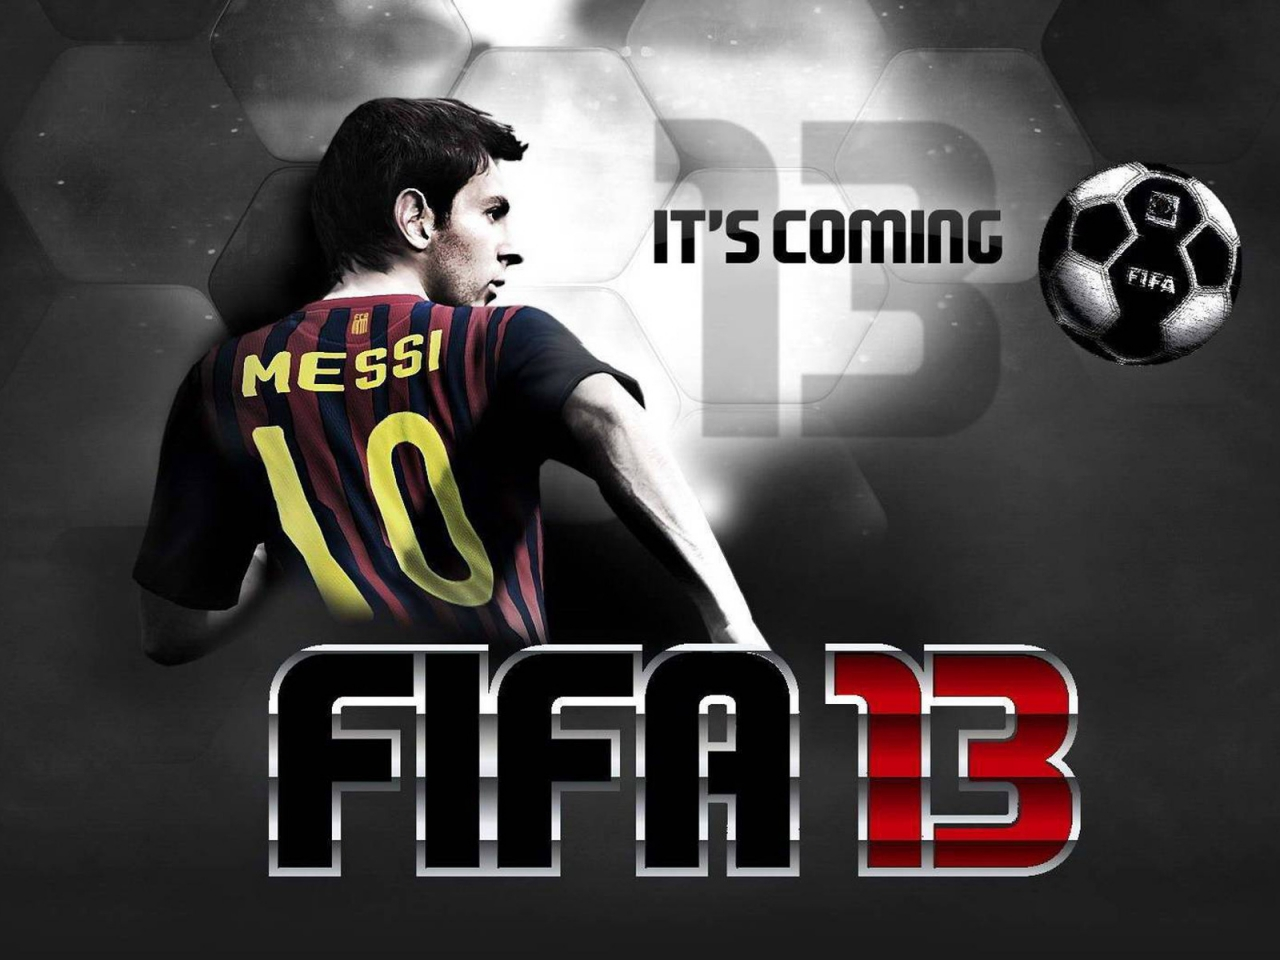 FIFA 13 for 1280 x 960 resolution